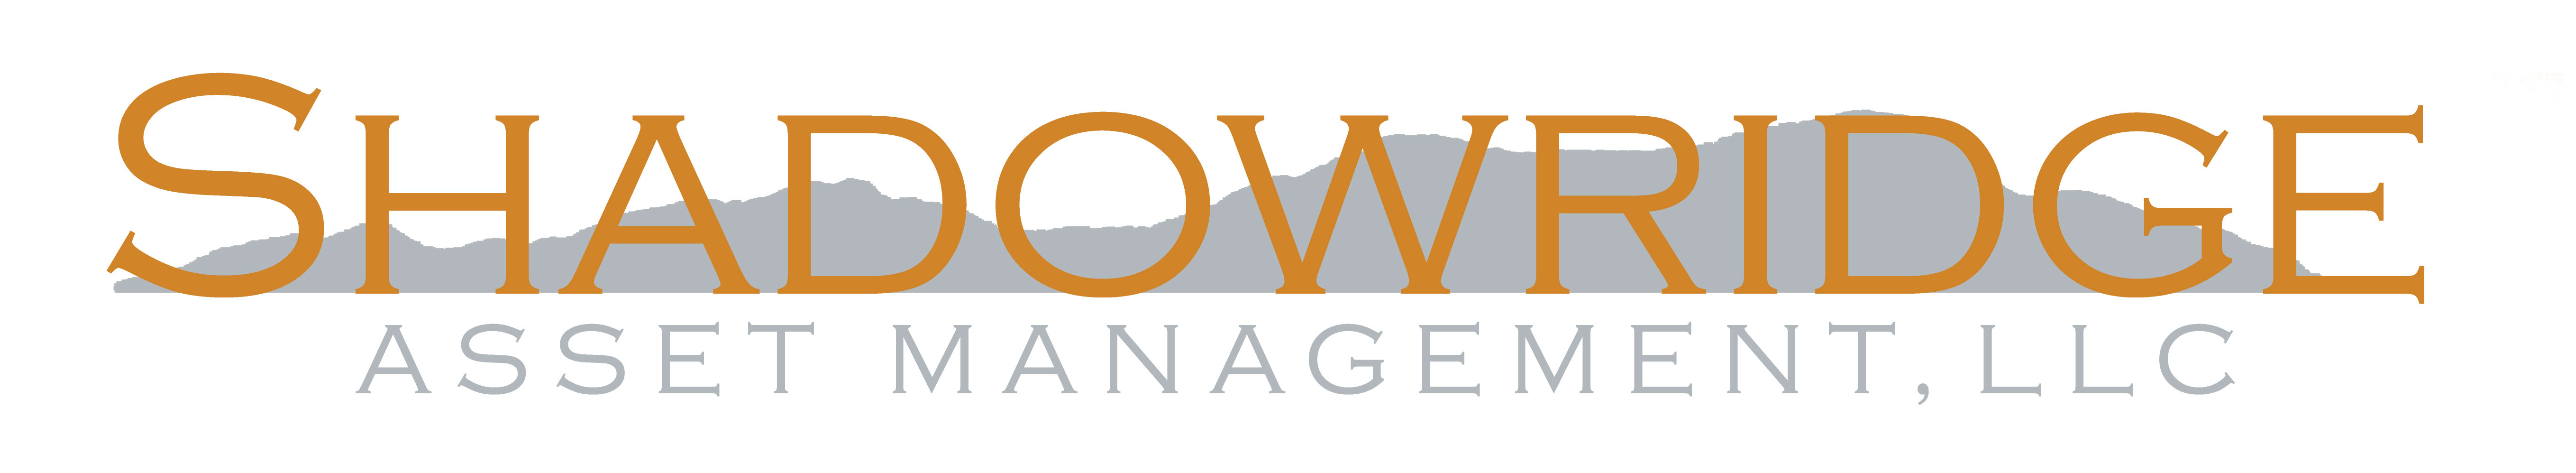 Shadowridge Asset Management